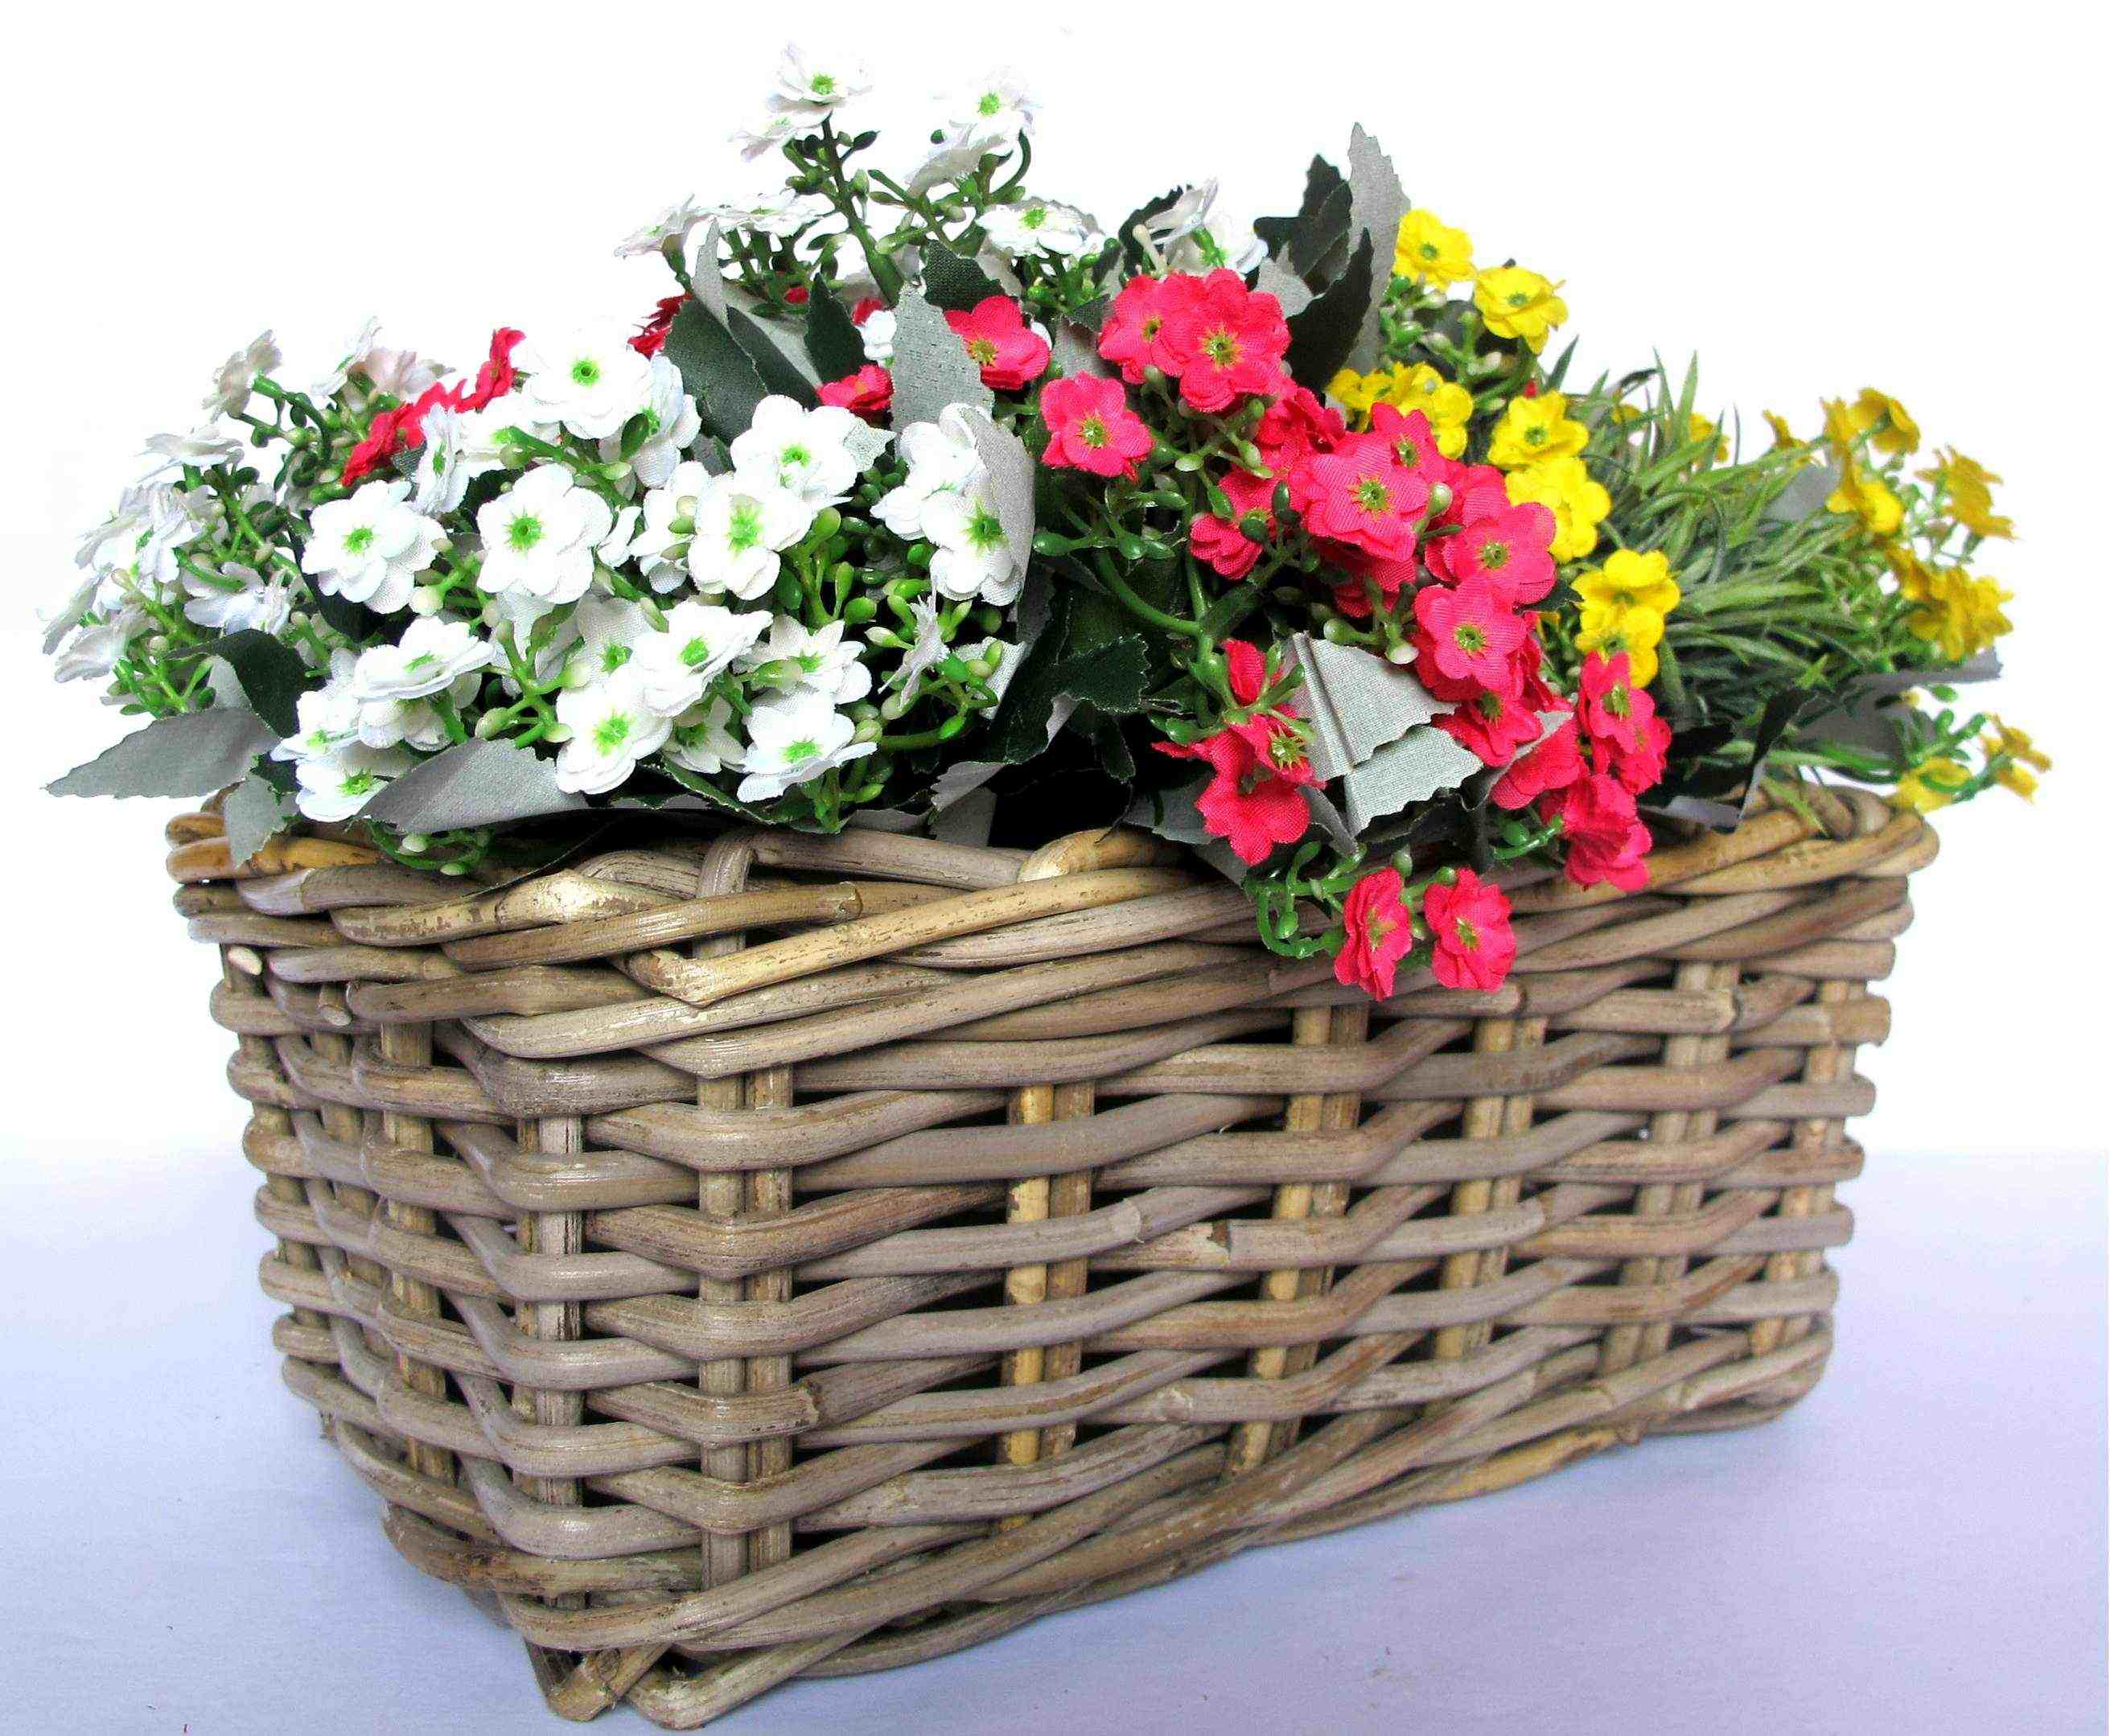 Rattan Flower Baskets : Floral baskets images basket flower arrangement